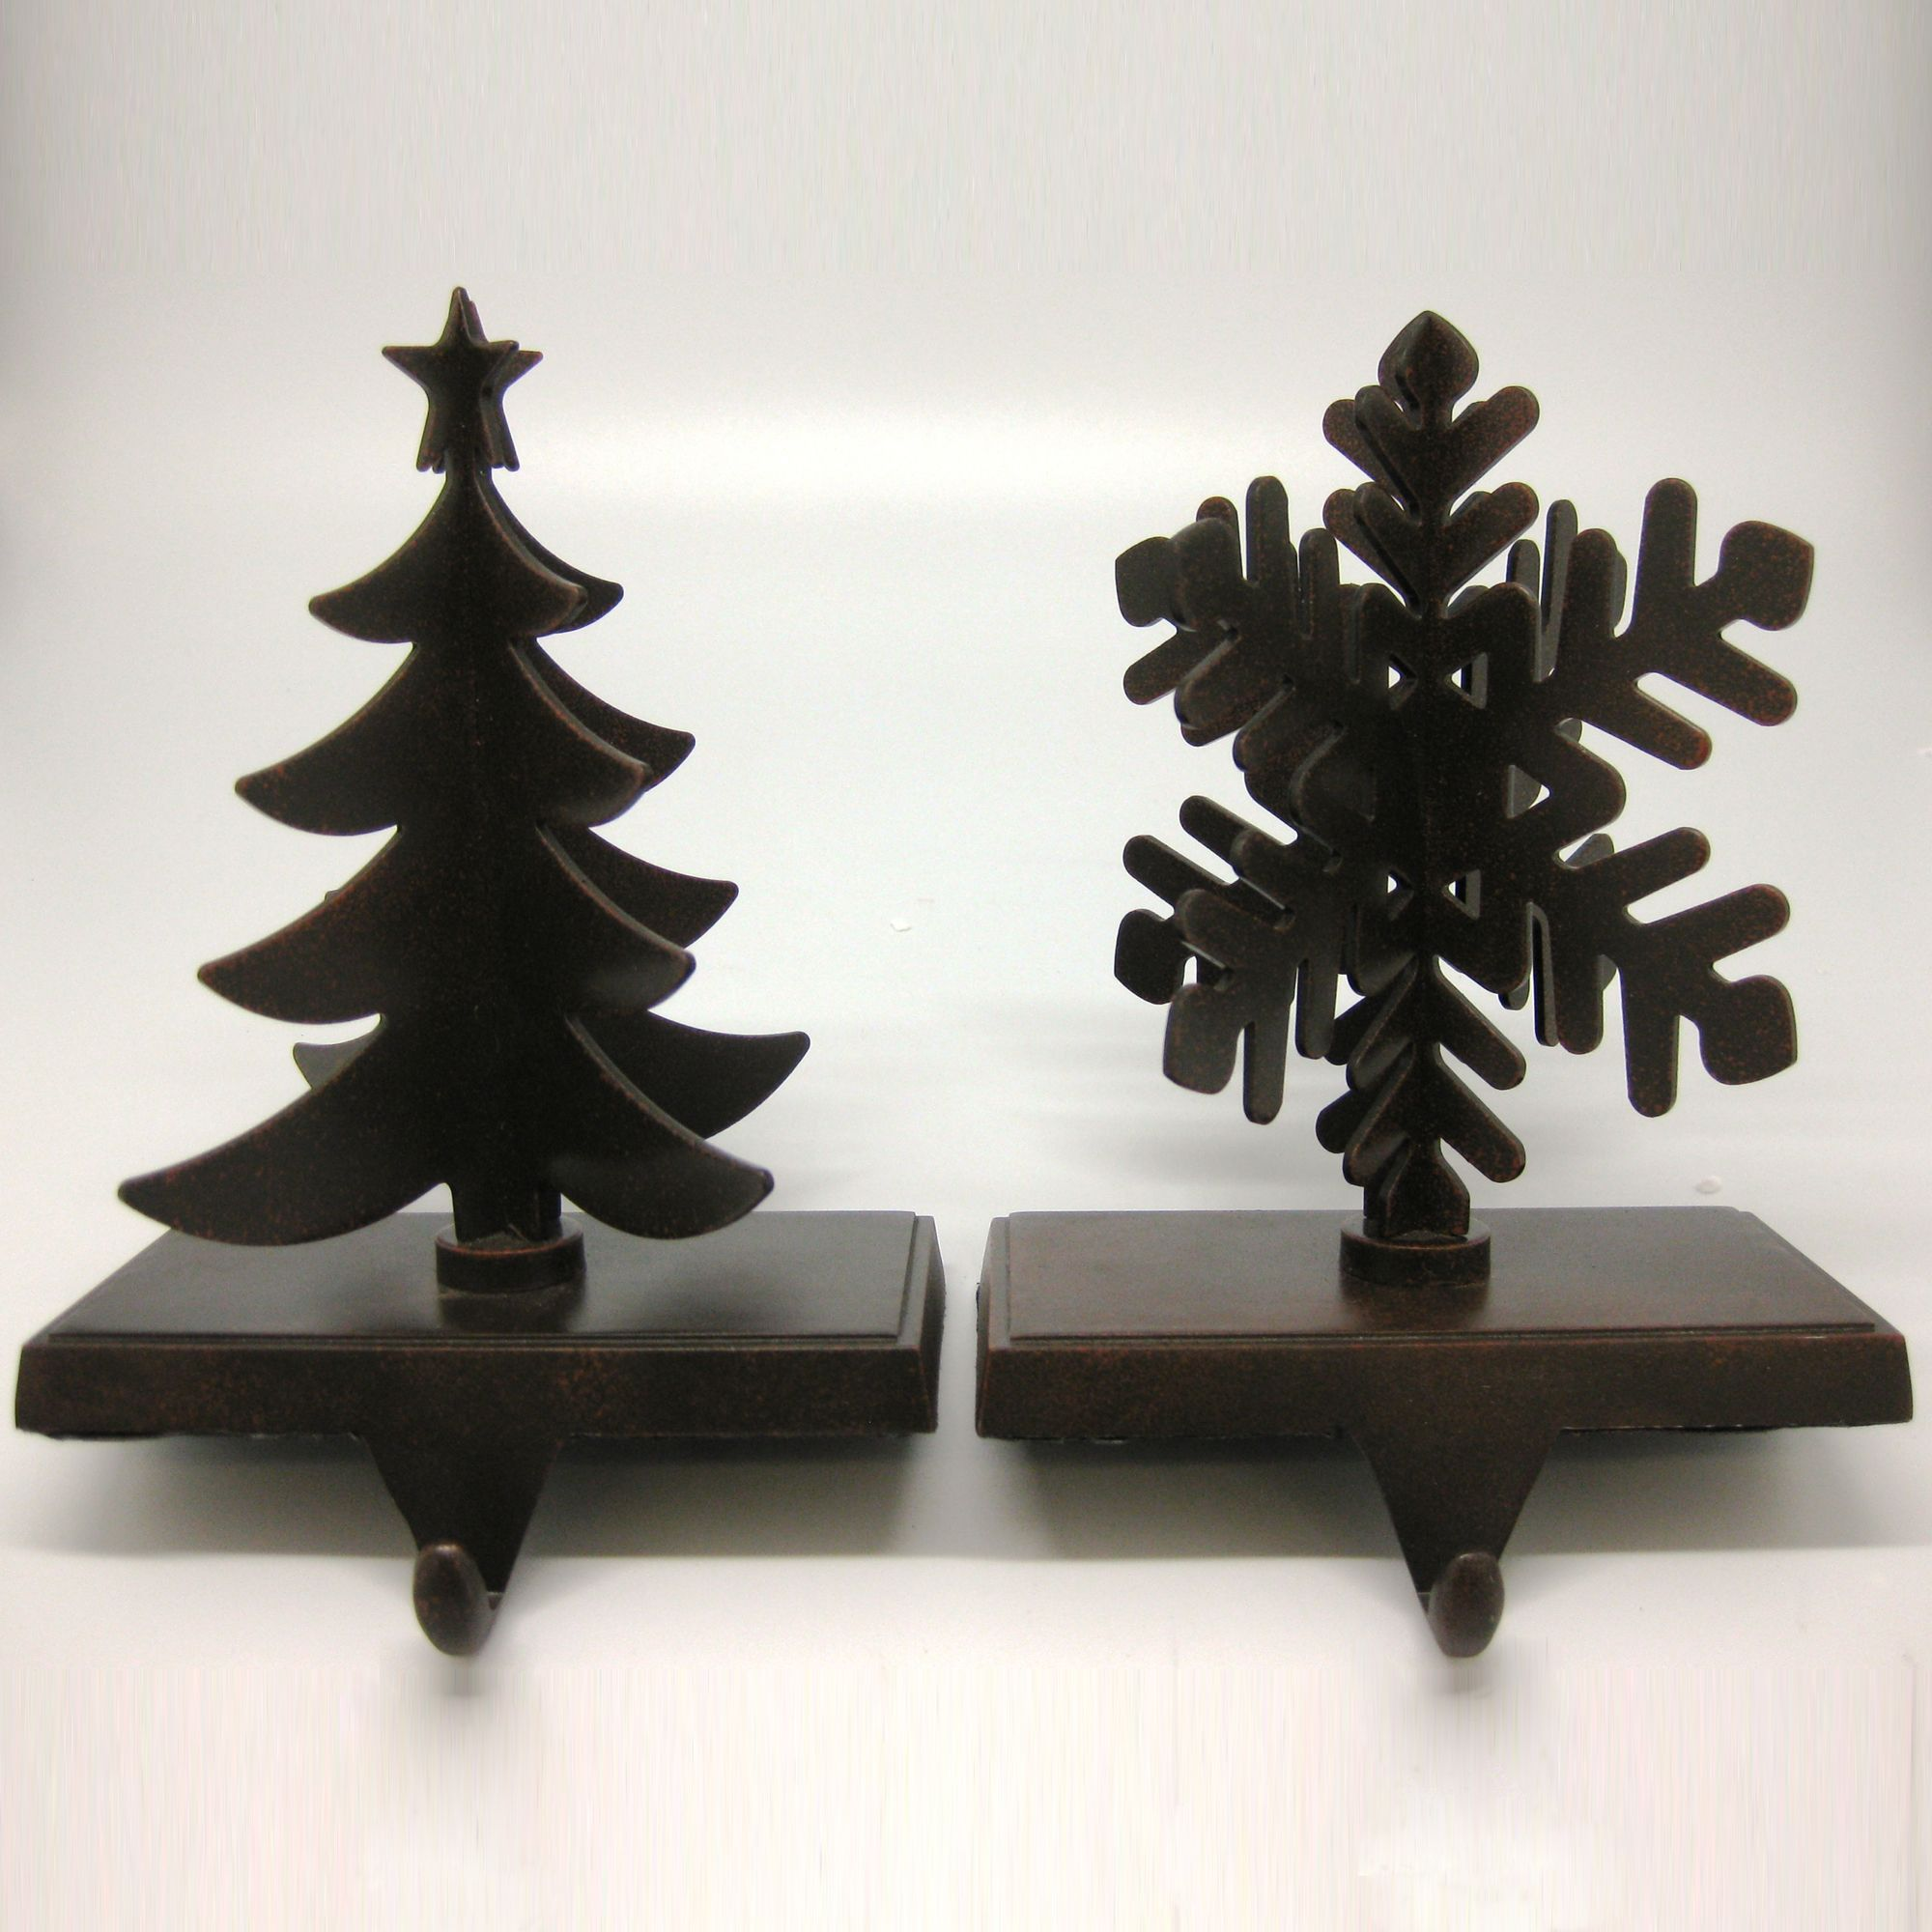 2pk Metal Stocking Holder - Snowflake And Tree                                                                                   at mygofer.com